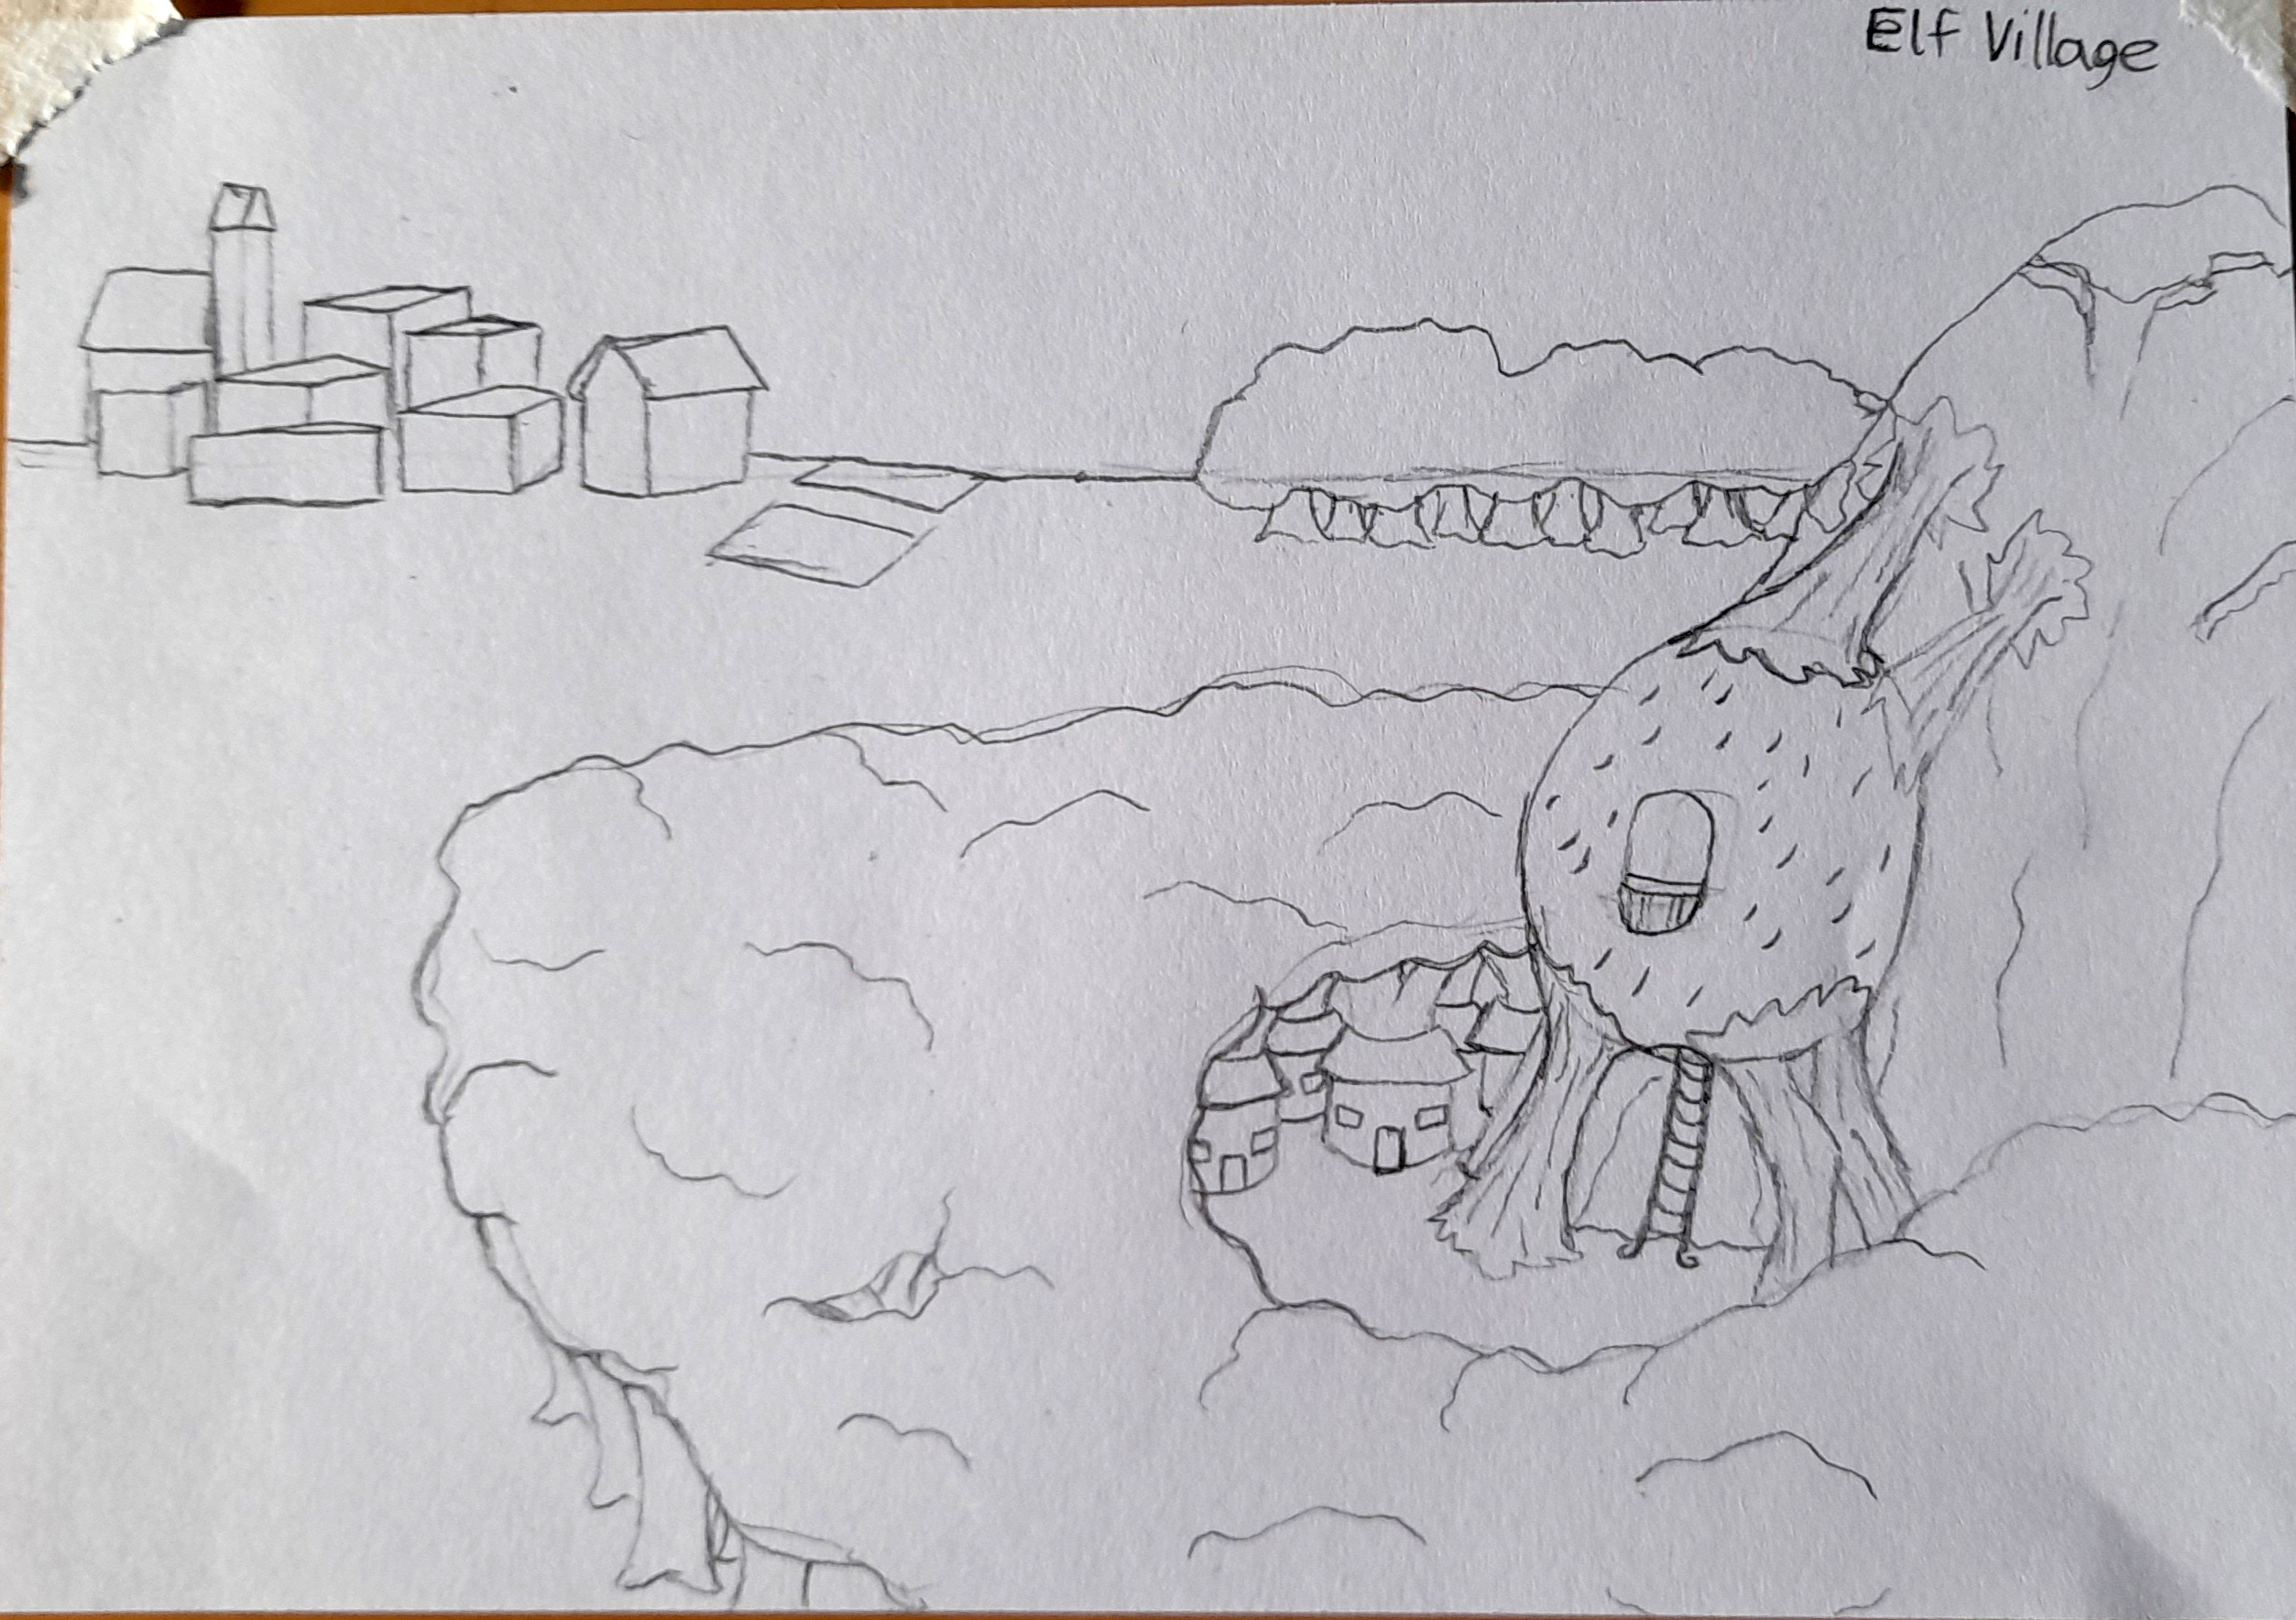 A pencil sketch of and elf village with huts built around tree trunks.